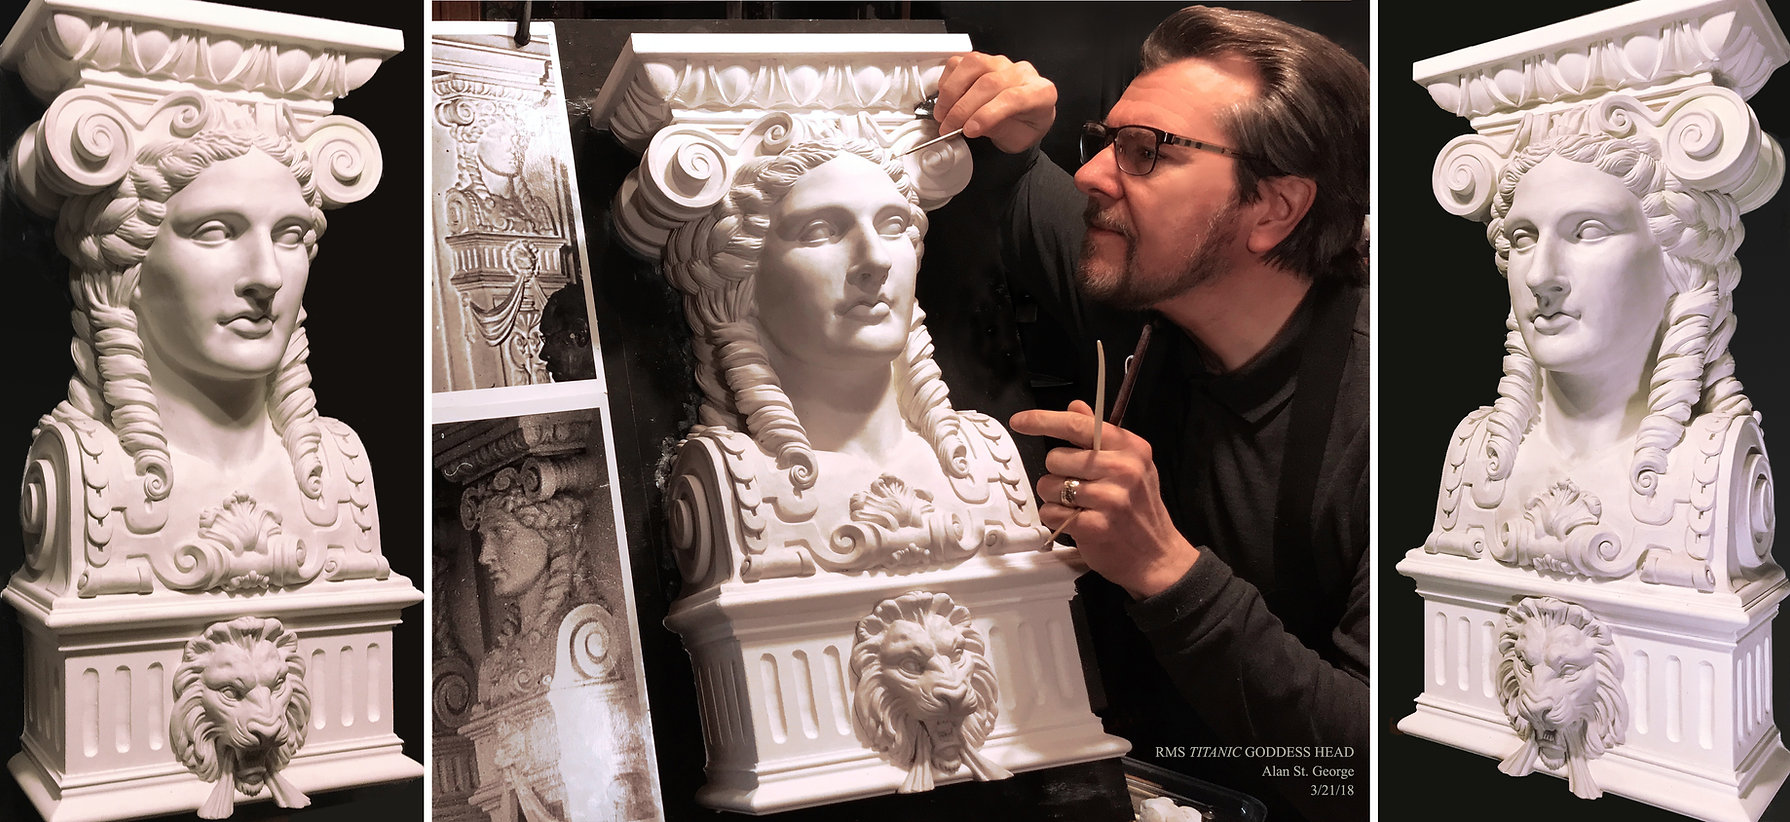 Titanic sculptor Alan St. George recreates the Goddess from the First-class Dining Saloon